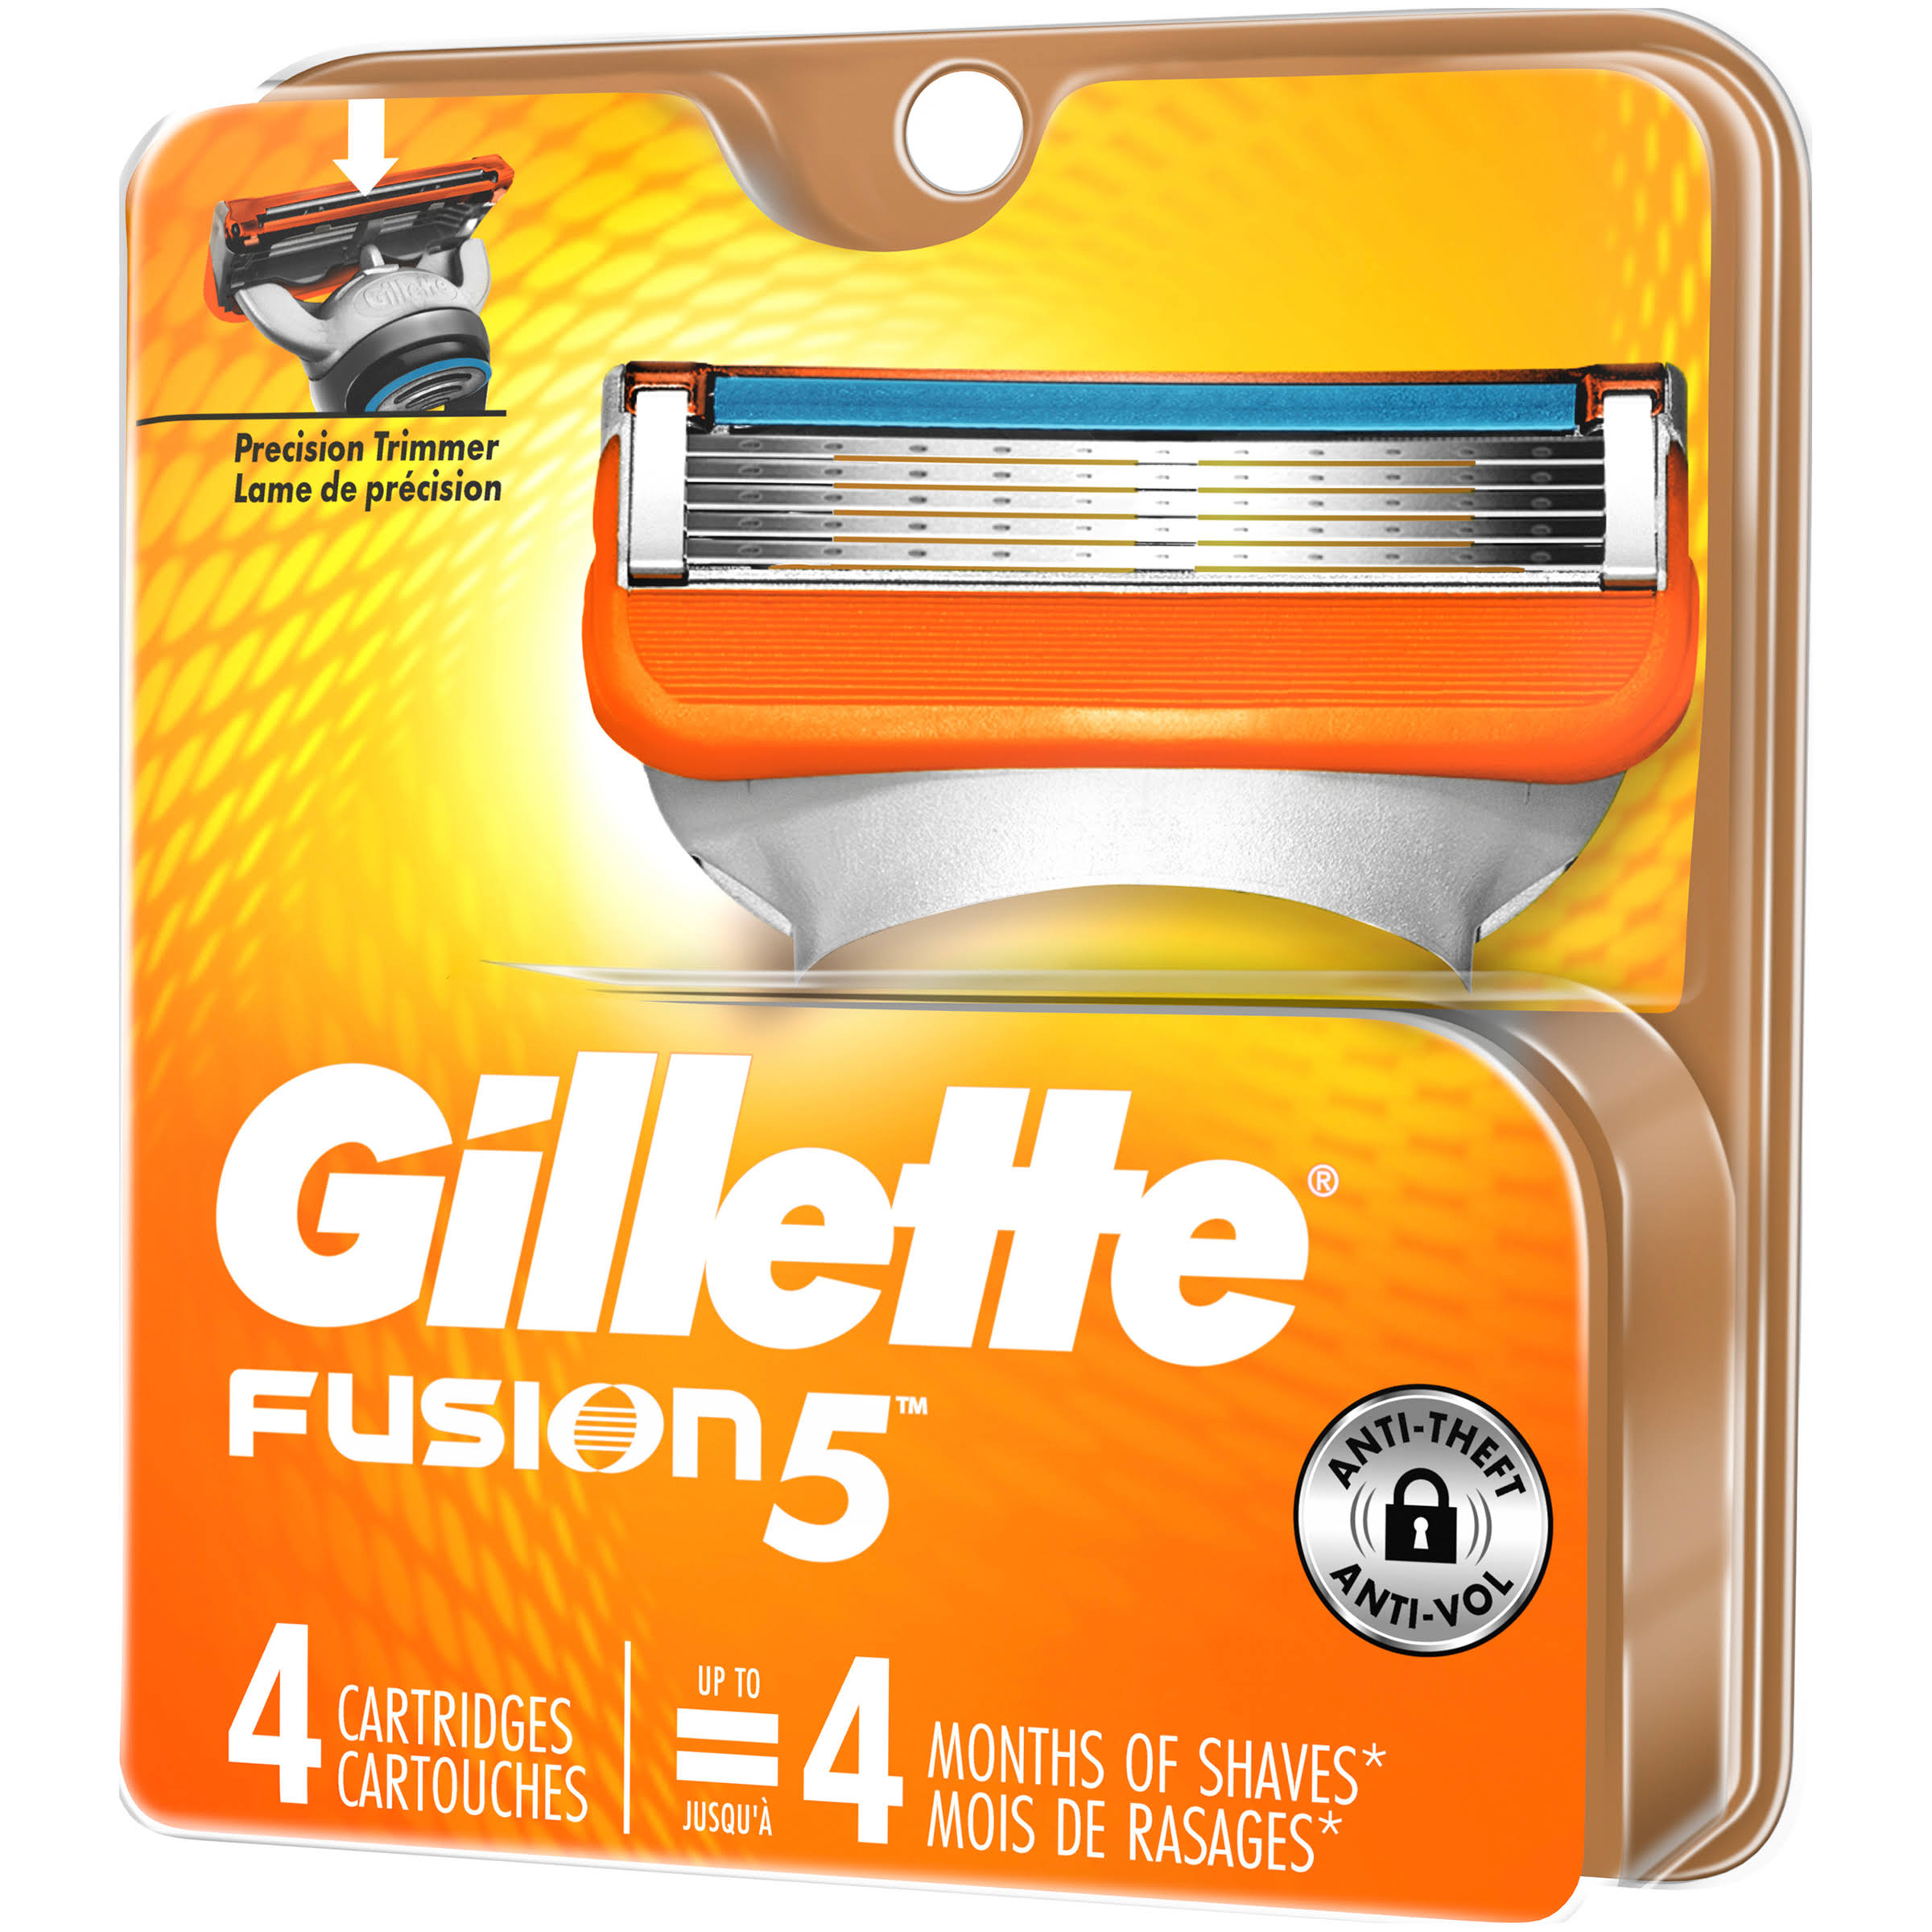 Gillette Fusion Power Razor Blade Refills - 4 Cartridges